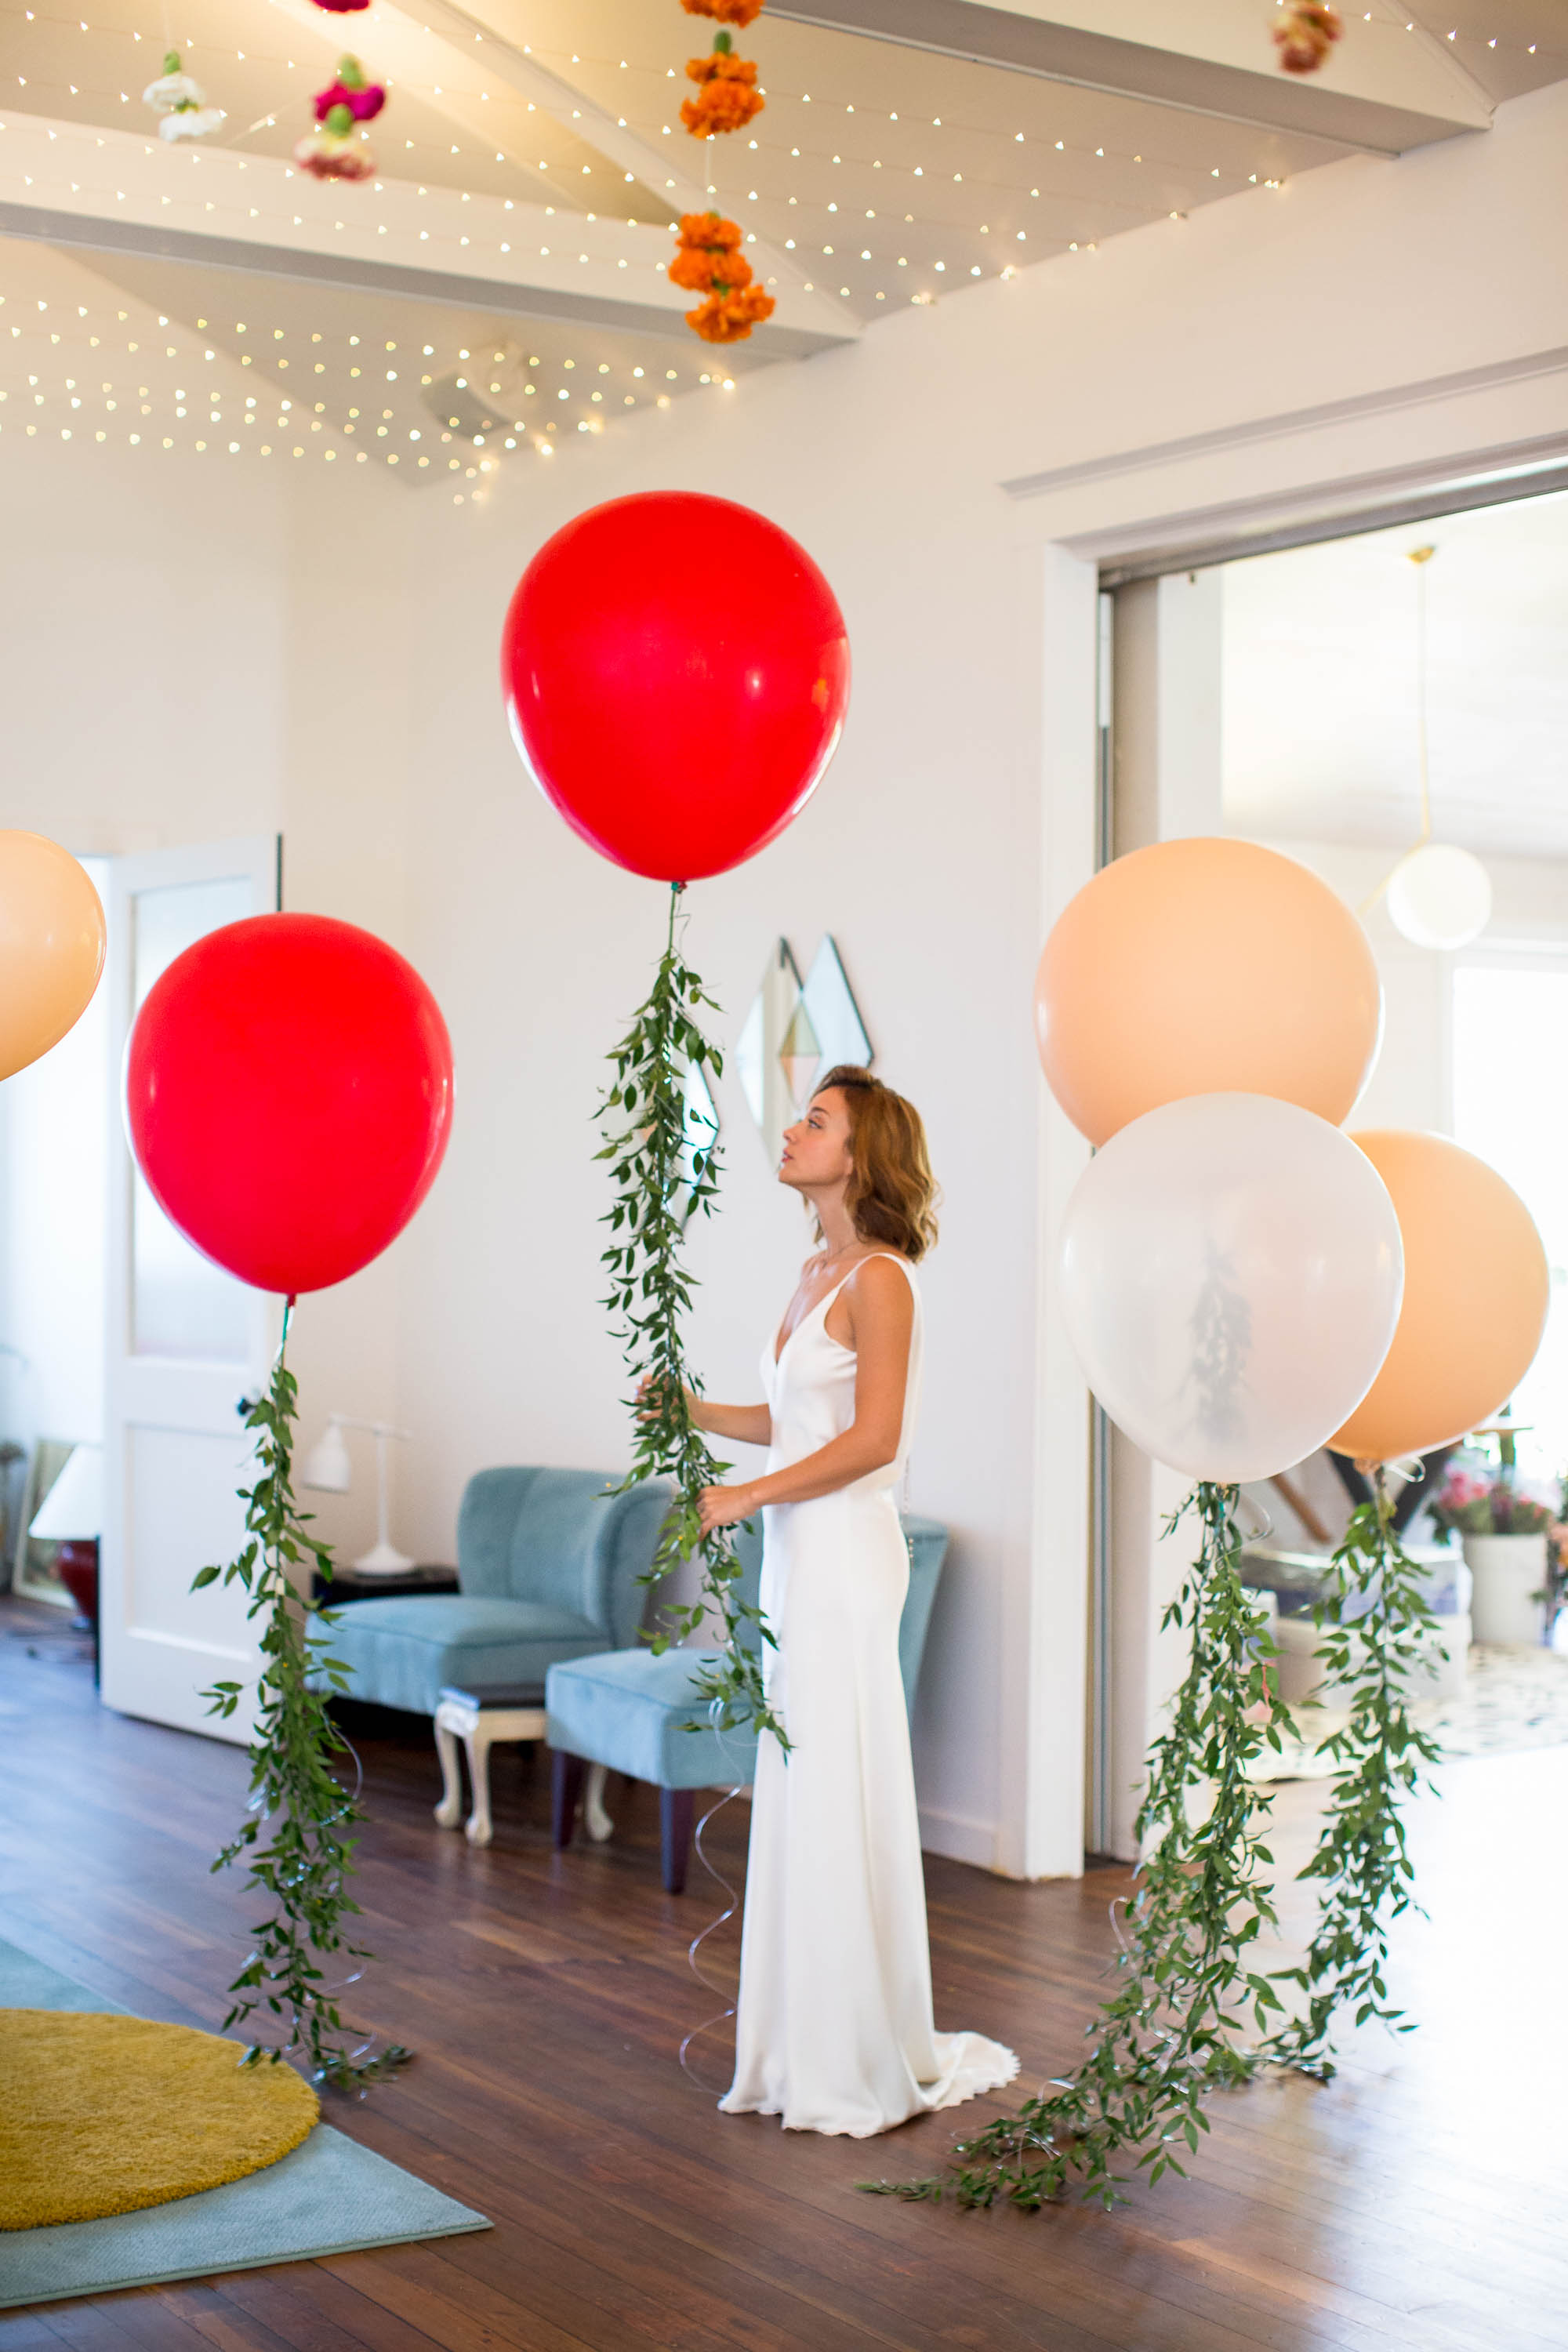 BALLOON INSTALLATION, WEDDING DESIGN, WEDDING BALLOONS